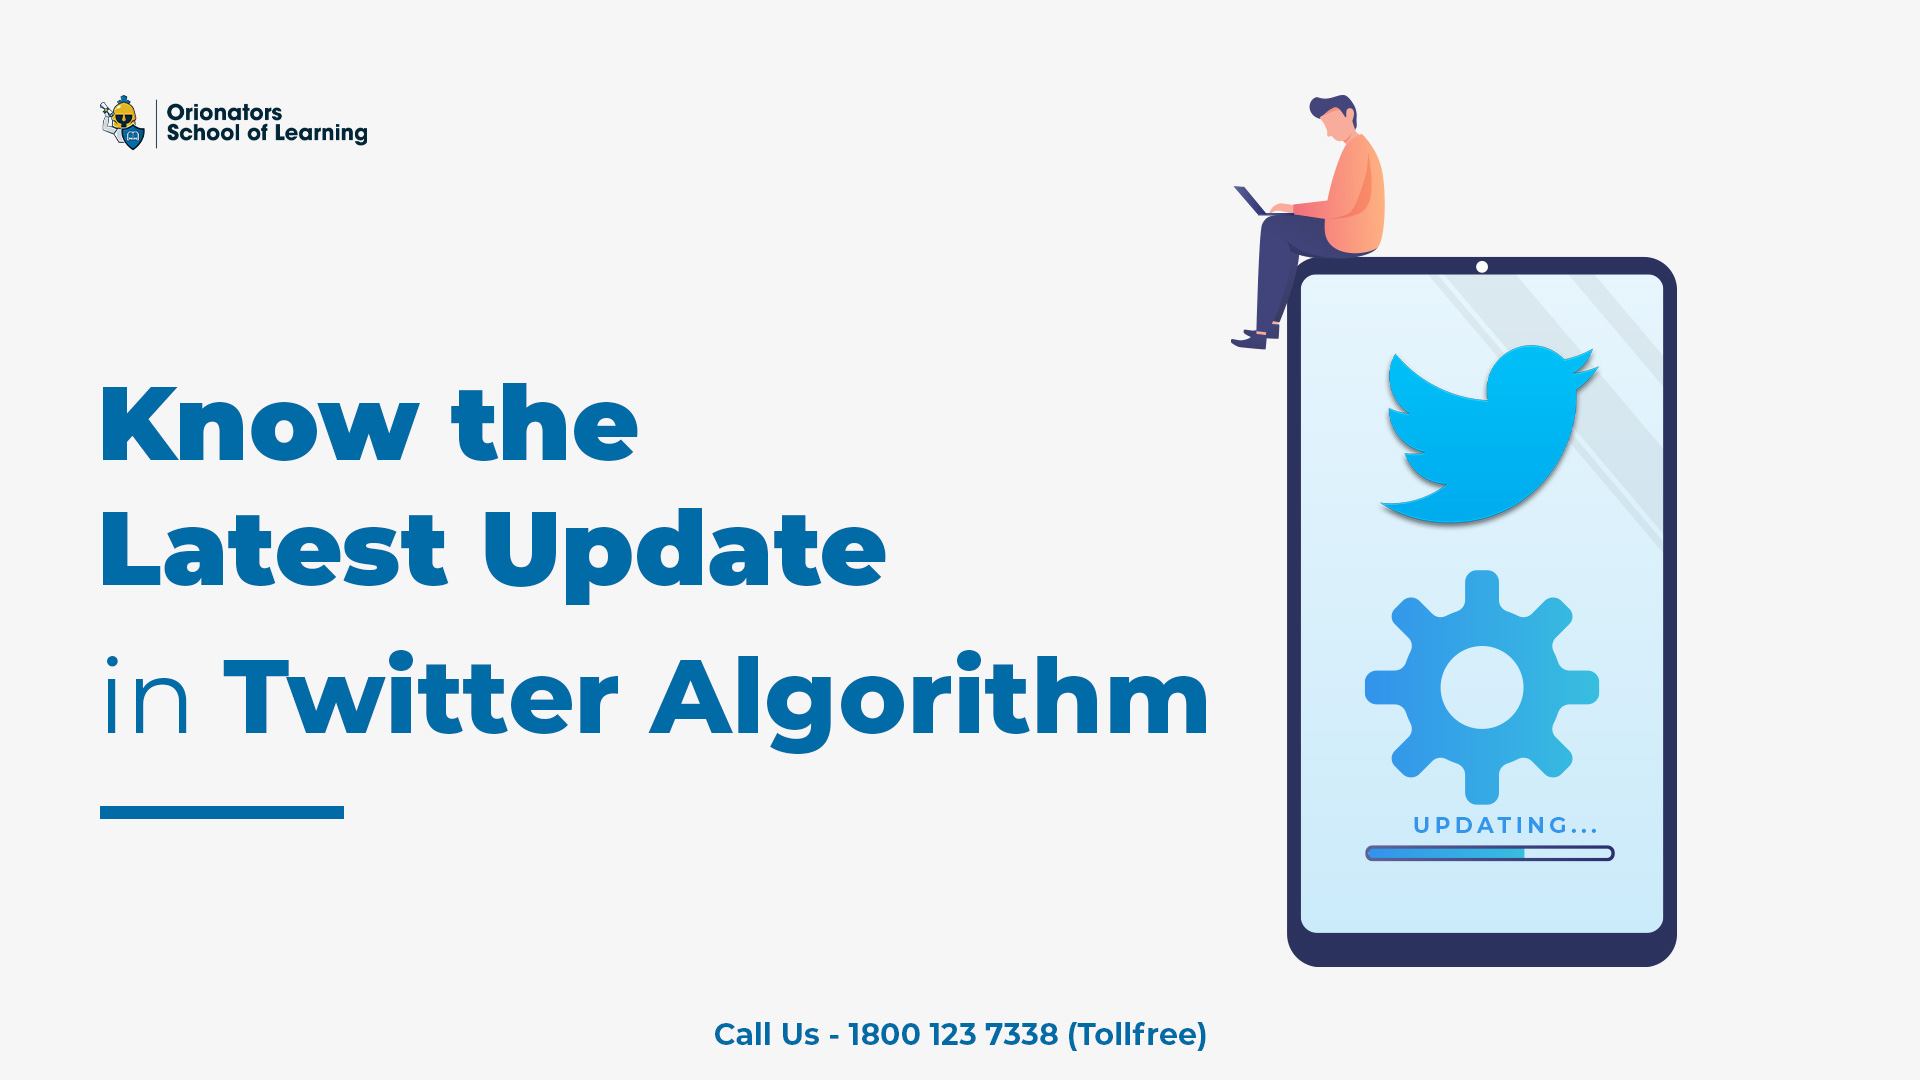 Know the Latest Update in Twitter Algorithm